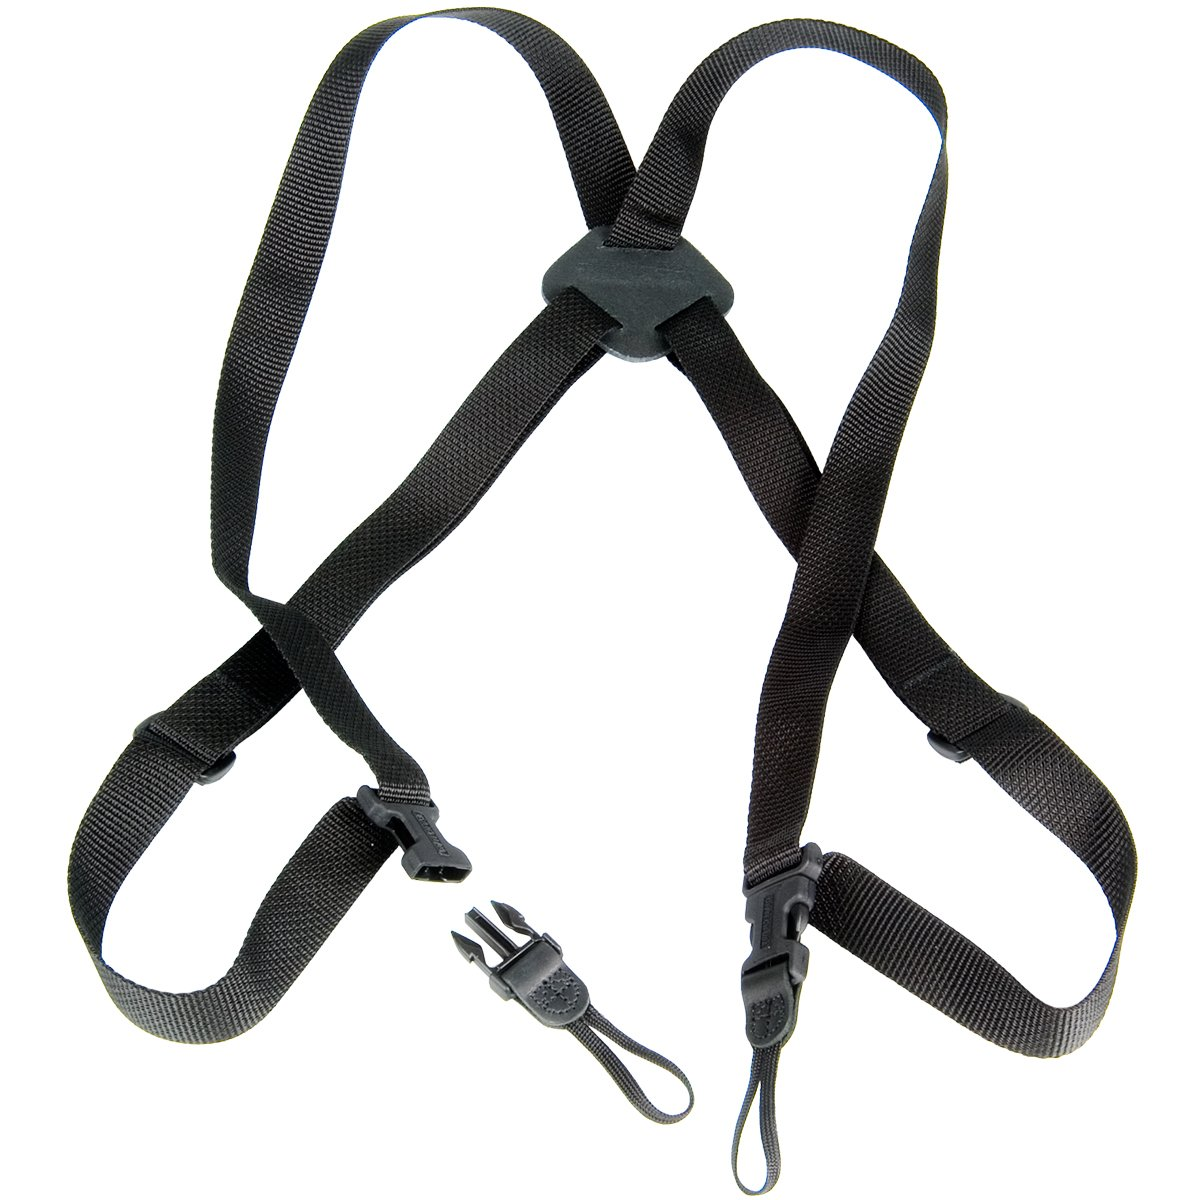 OP/TECH USA Bino/Cam Harness-Webbing, Black 5301412